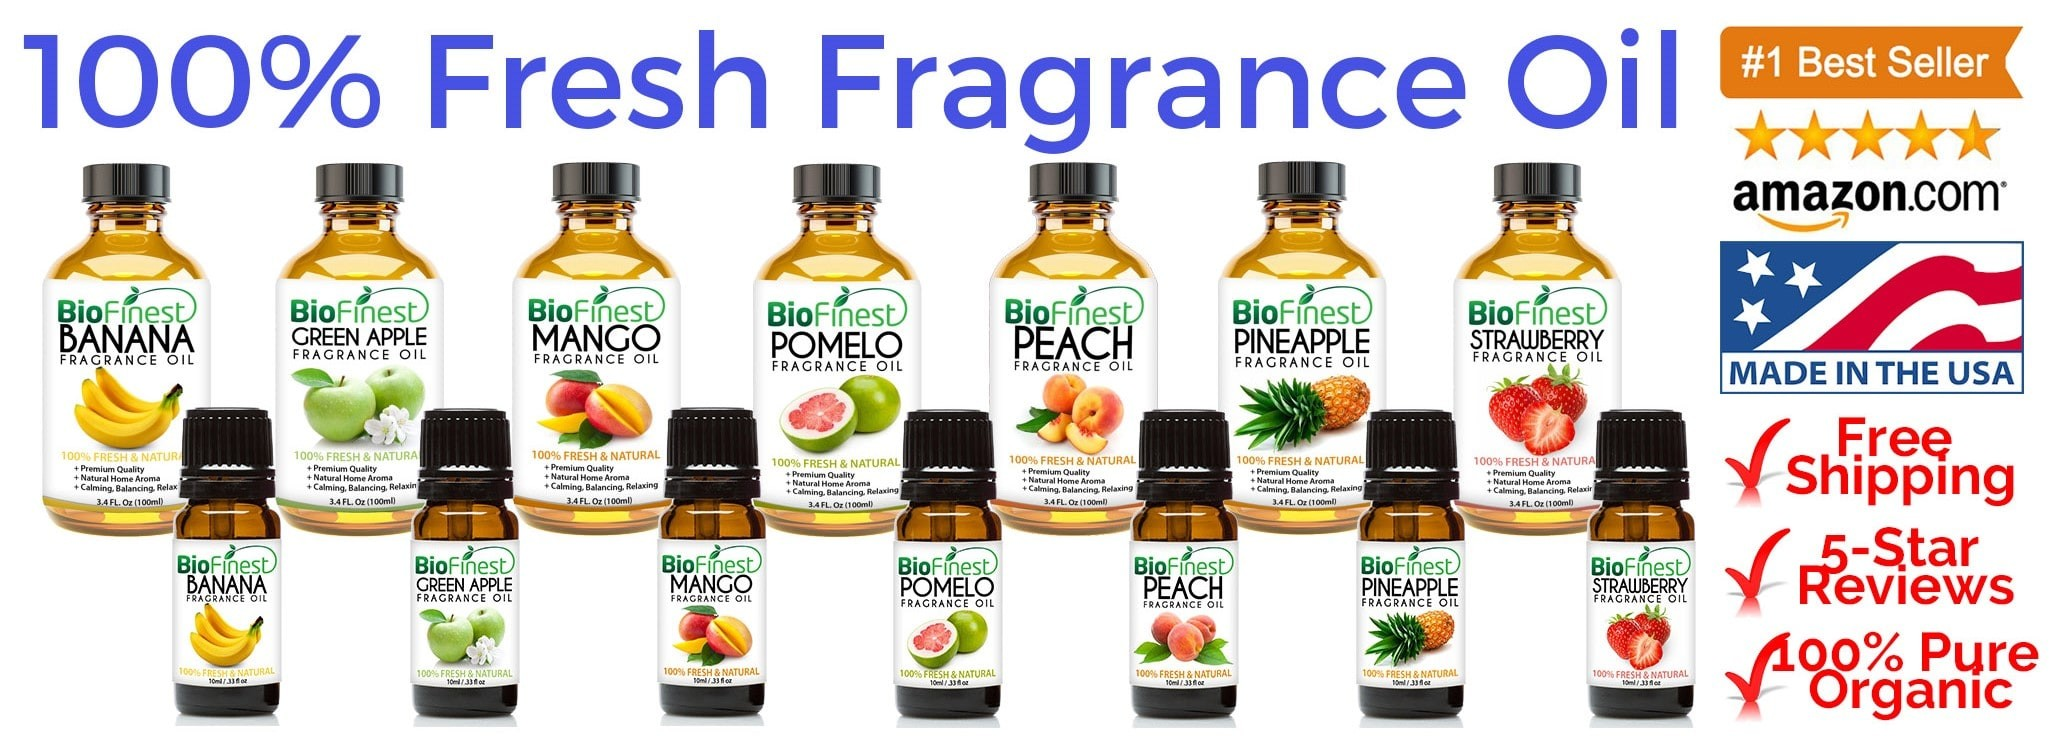 Biofinest 100% Fresh Fragrance Oil (Available in 10ml and 100ml)